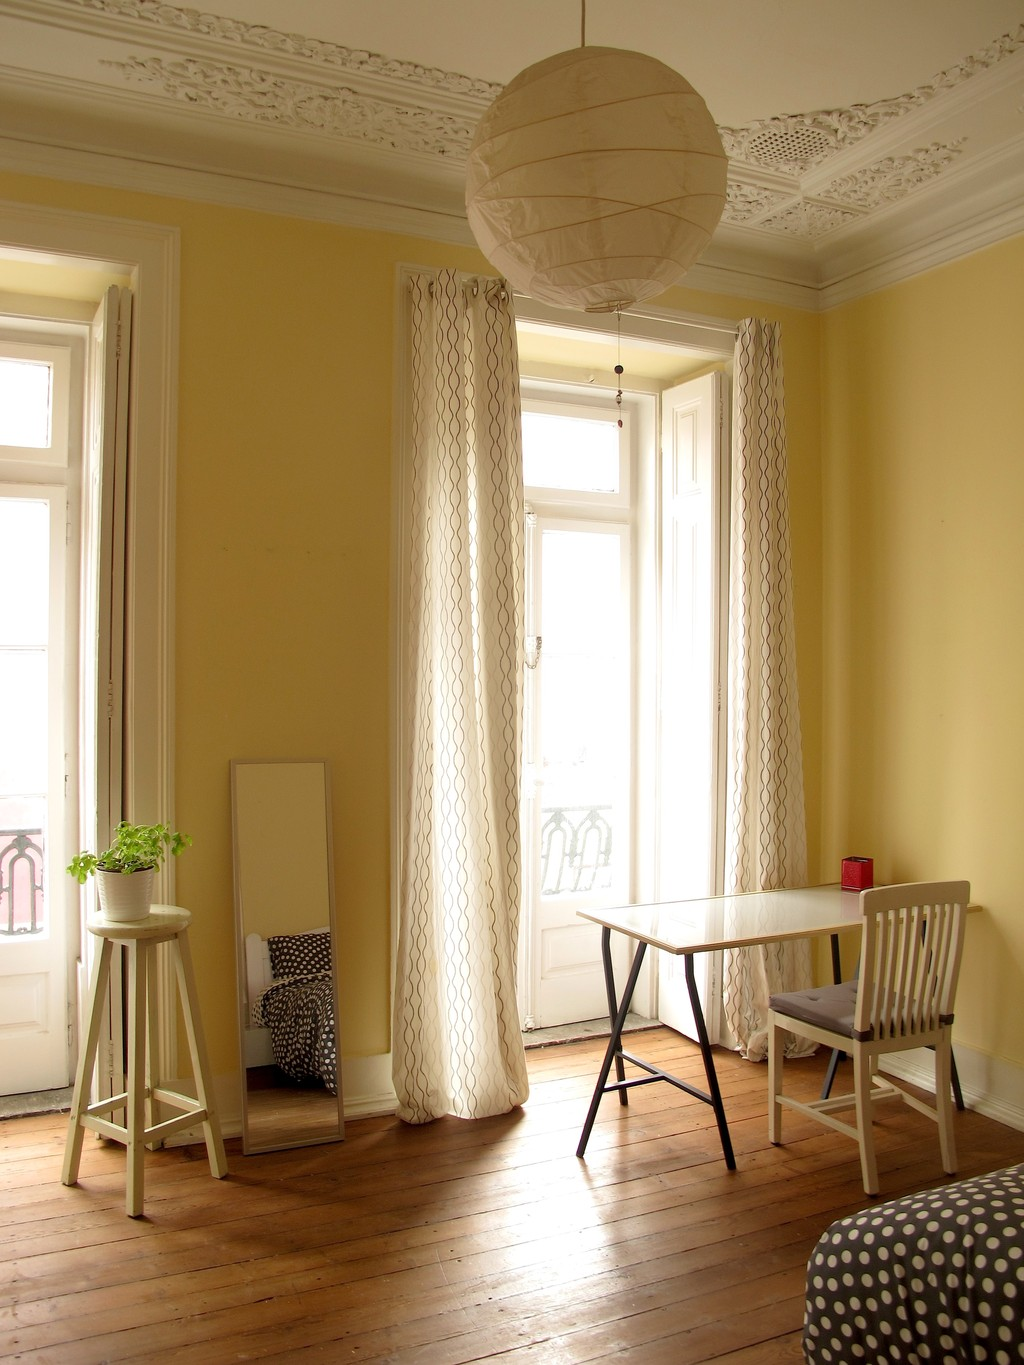 walk in water_Large and Sunny Room. HEART OF LISBON! BAIRRO ALTO! | Room for rent Lisbon